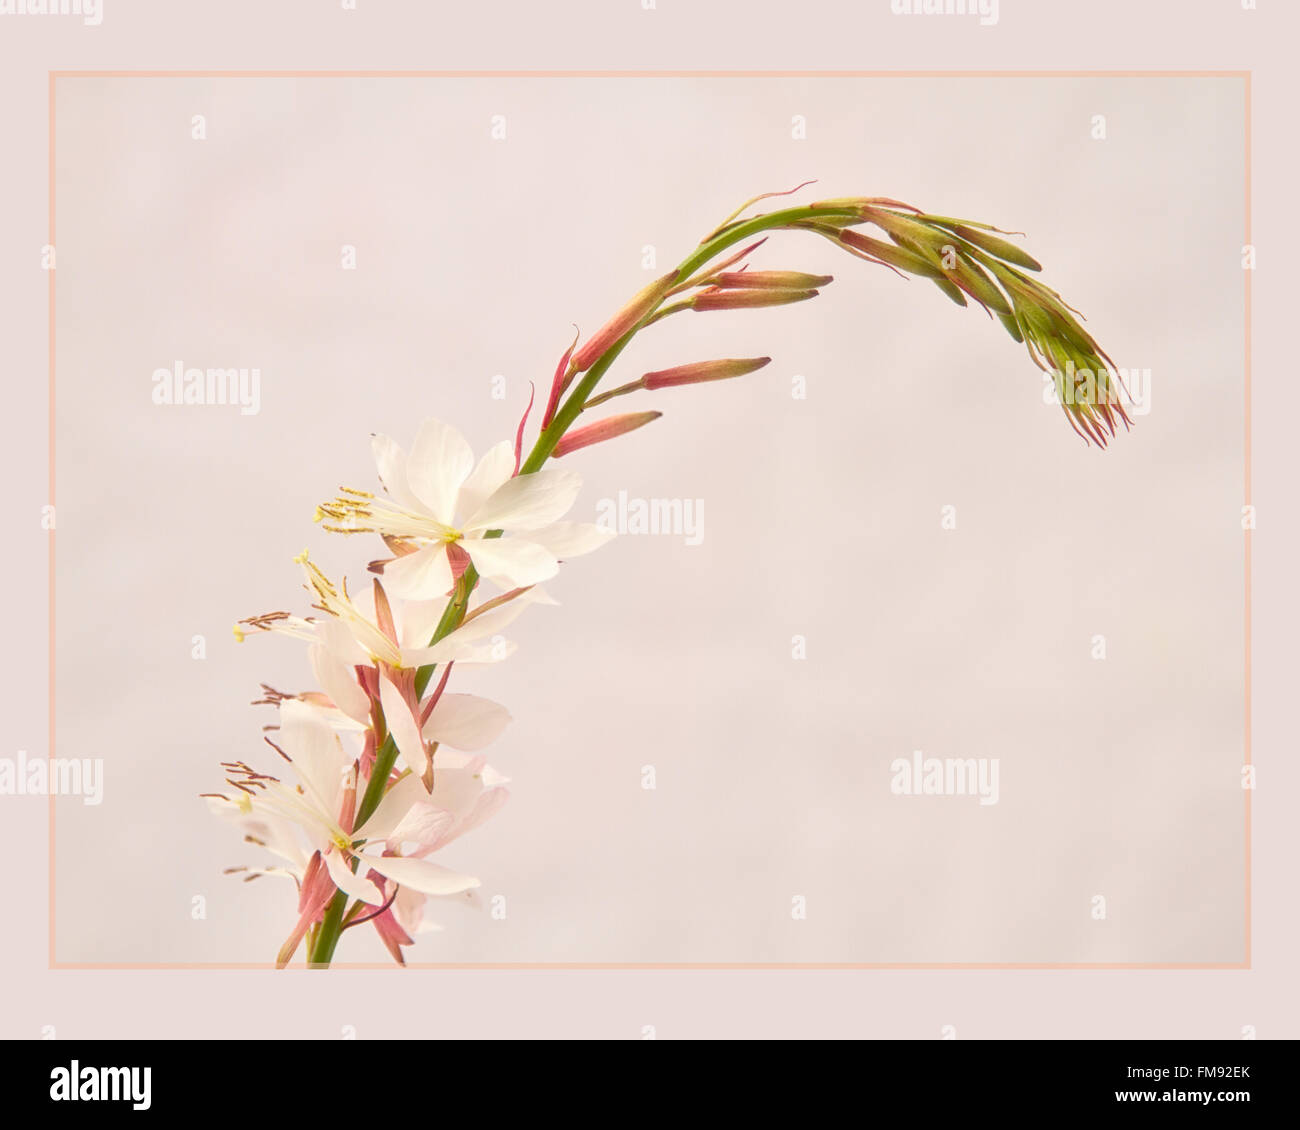 Gaura 'The Bride' 2 - Stock Image